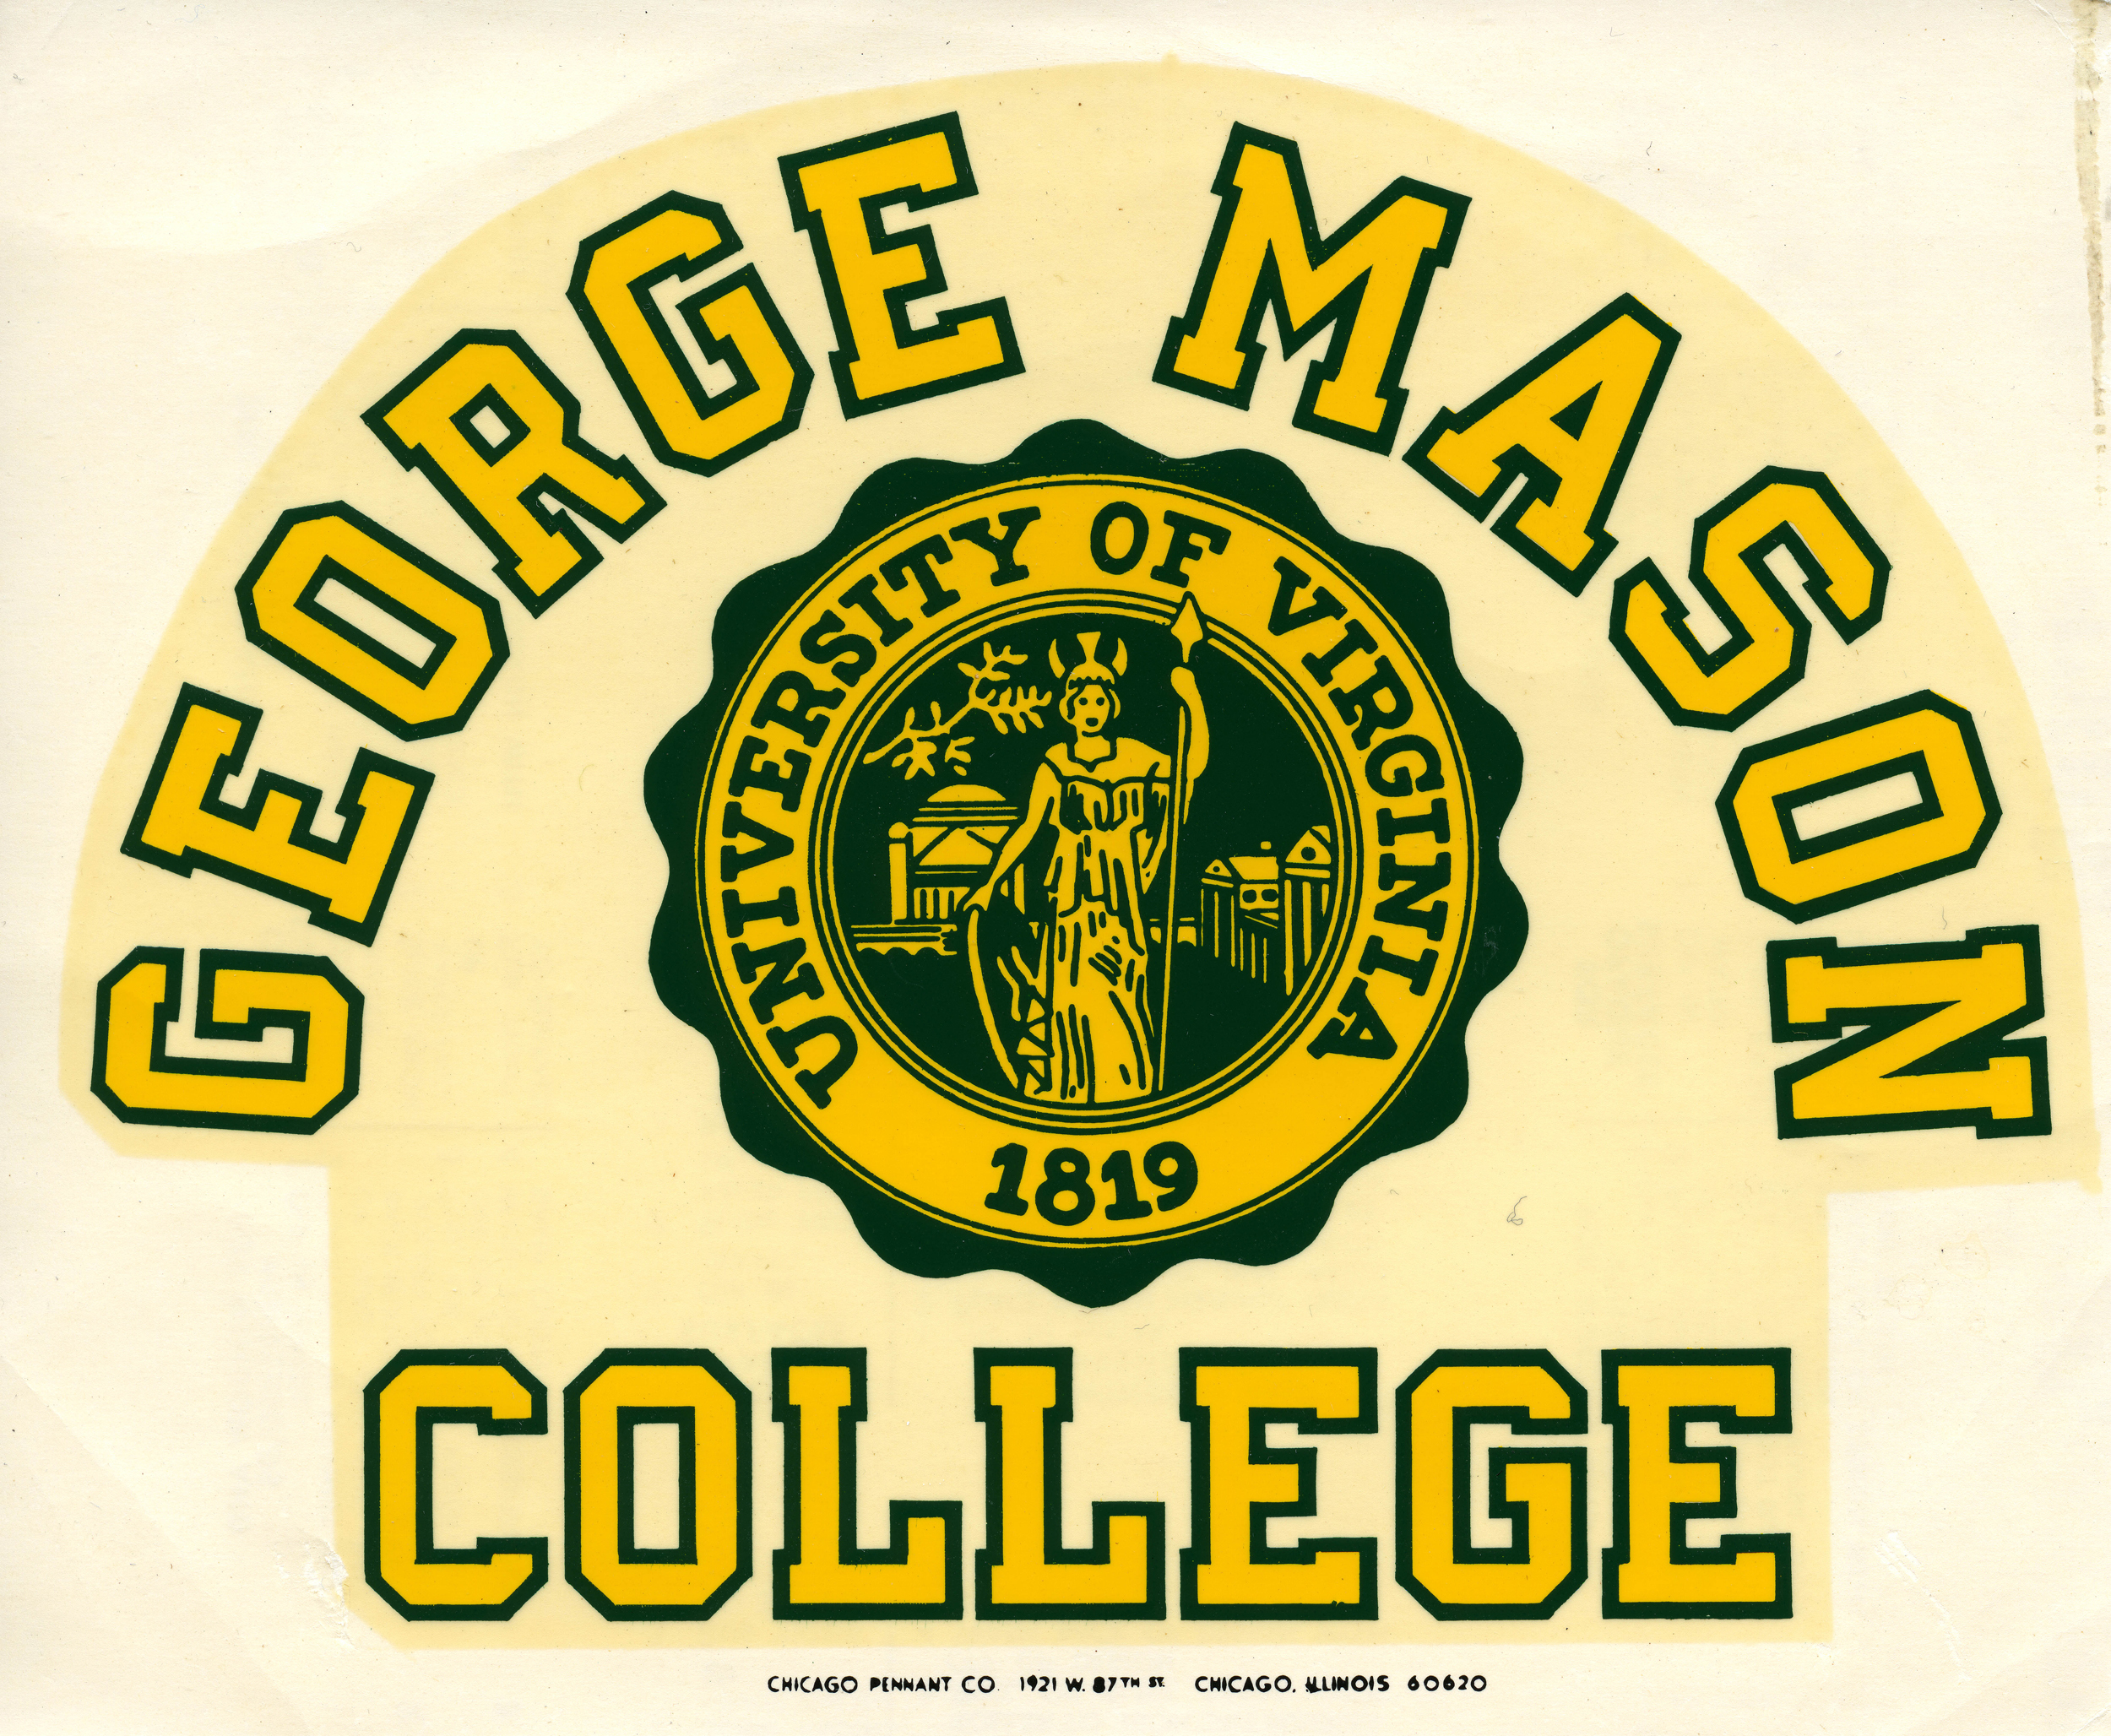 George Mason College, decal, ca. 1970